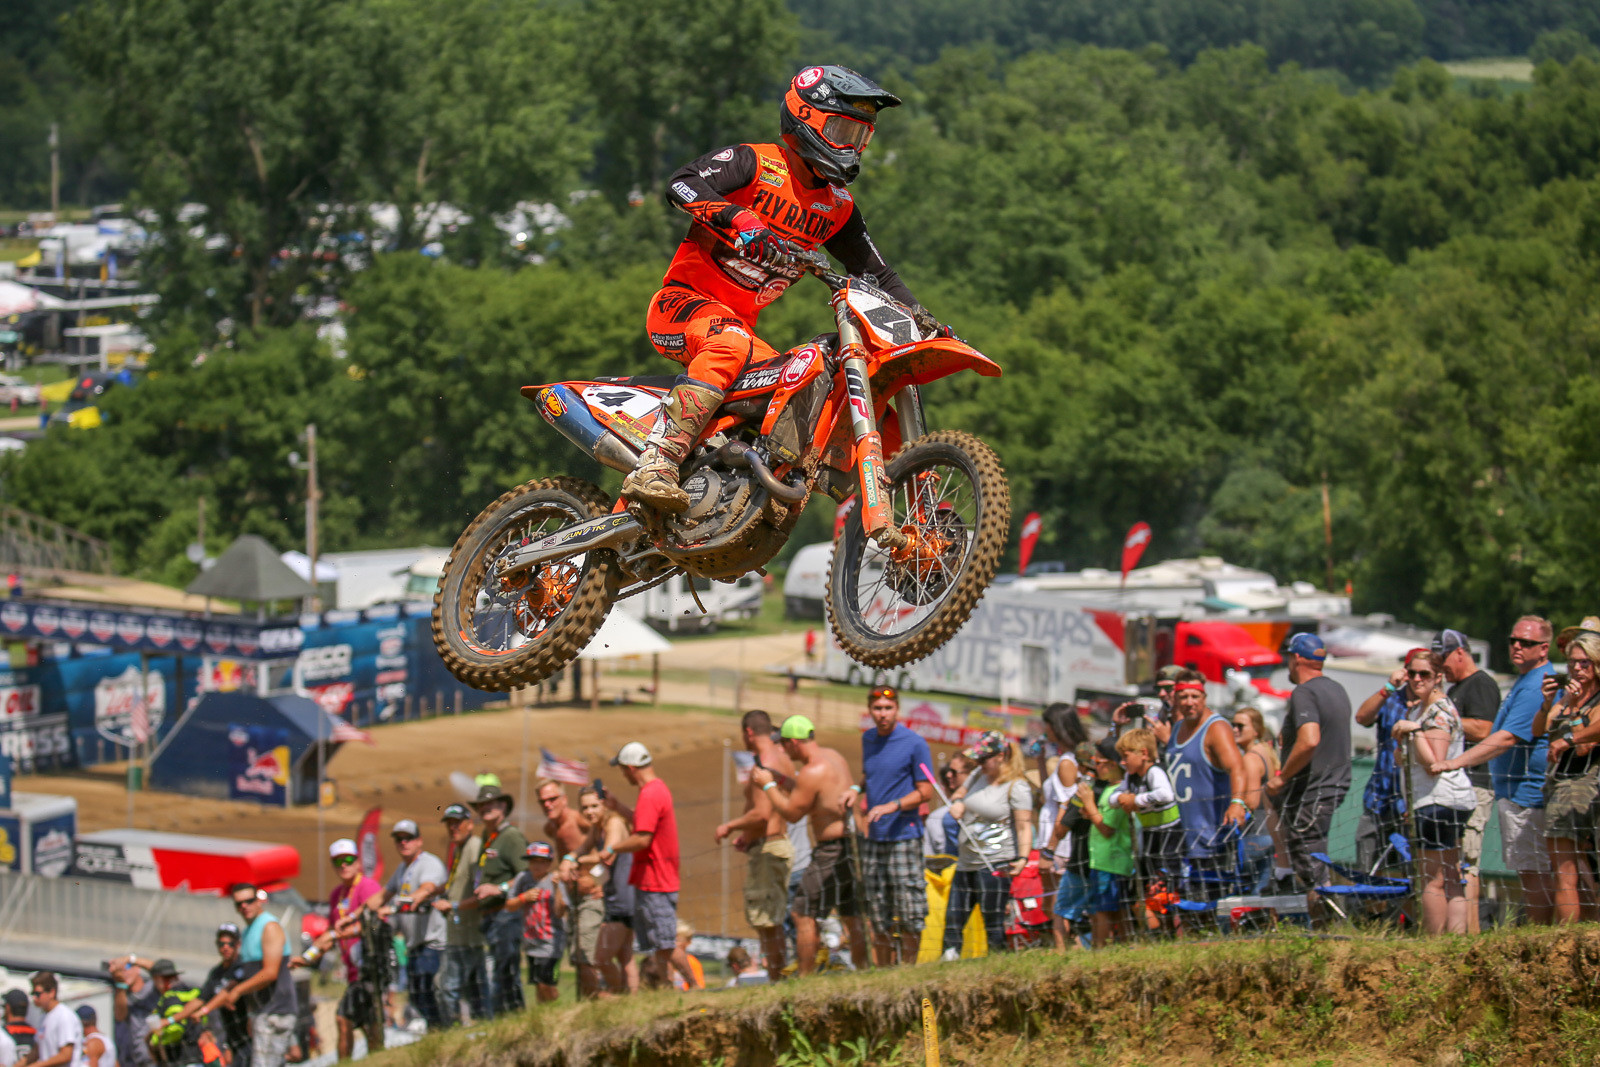 Blake Baggett is still hunting for the perfect setup, and did some tire testing between RedBud and Spring Creek. He was on the podium for the first moto, and just outside the top three in moto two.